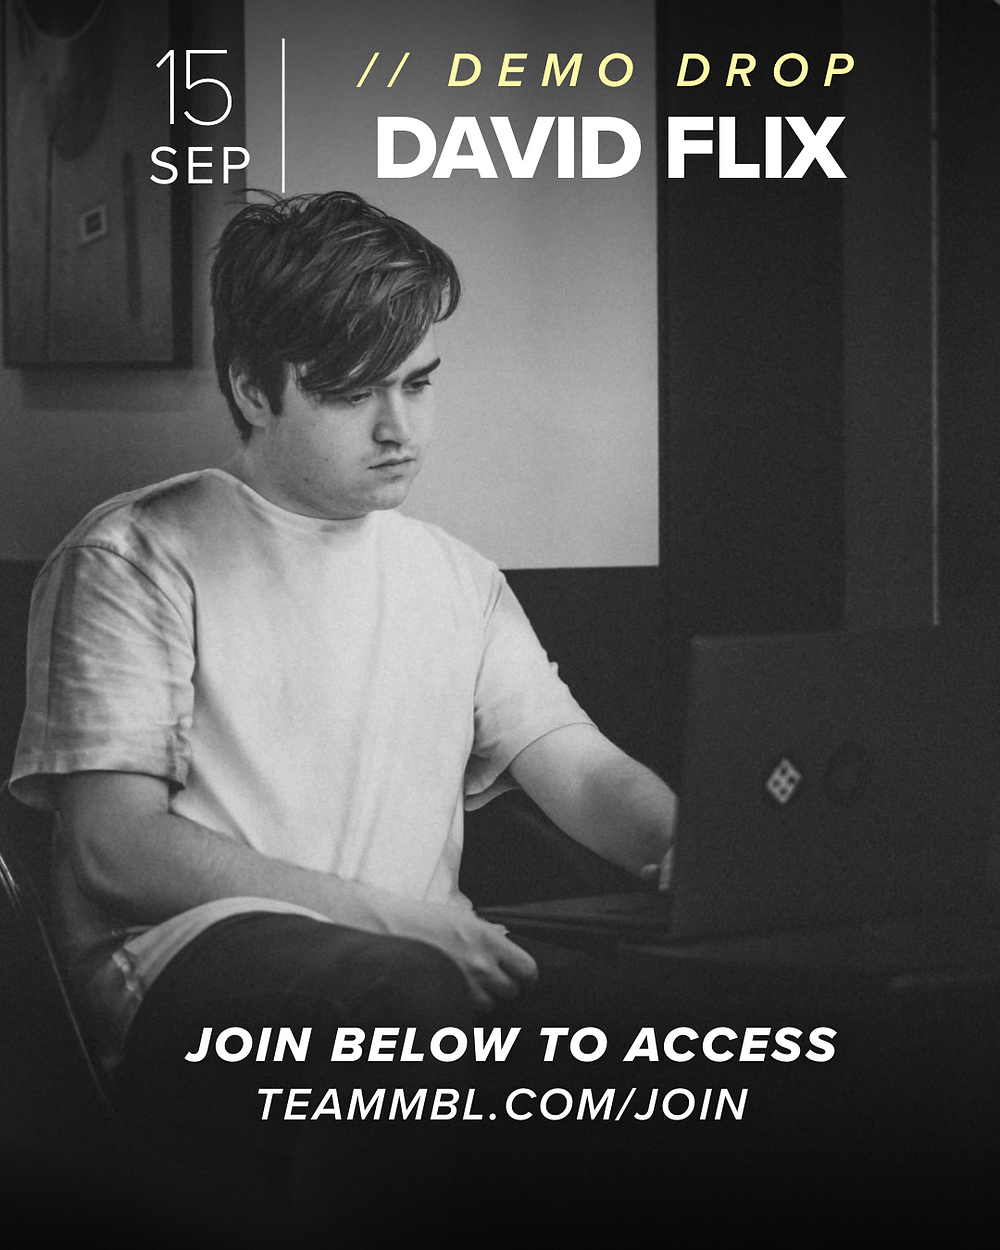 David Flix Demo Drop